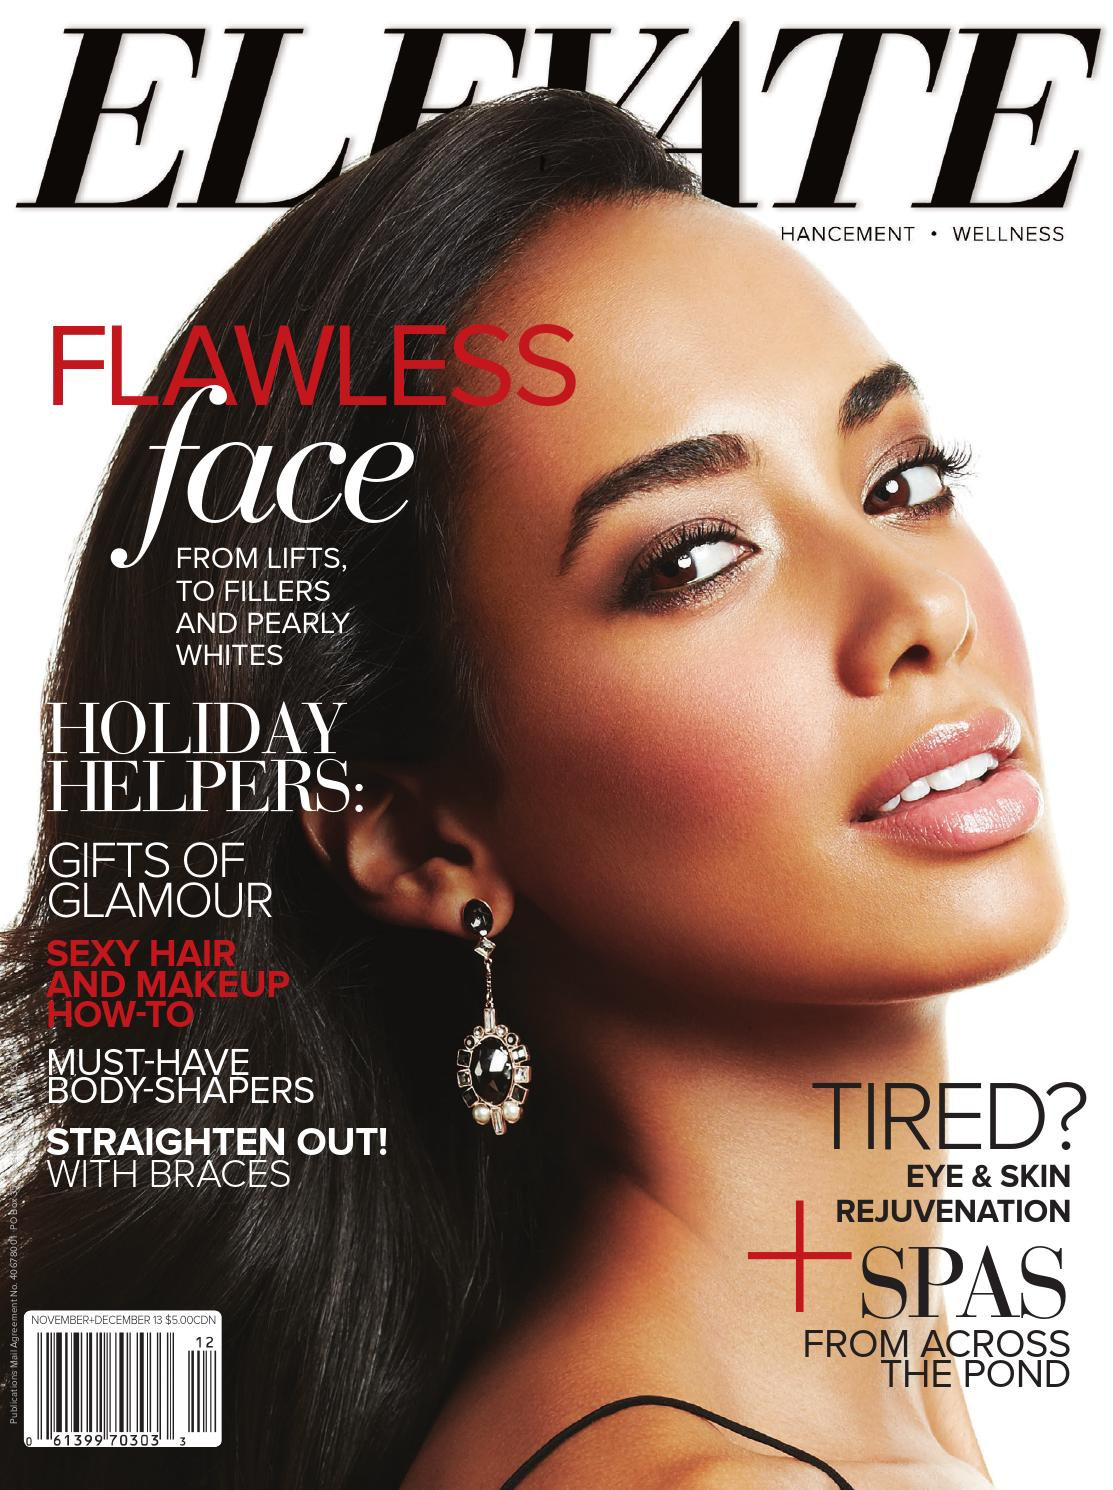 Elevate Magazine November December 2013 By Salon Communications Inc Jbs New York Makeup Brush 12 Eyerush Gold K 046 Issuu